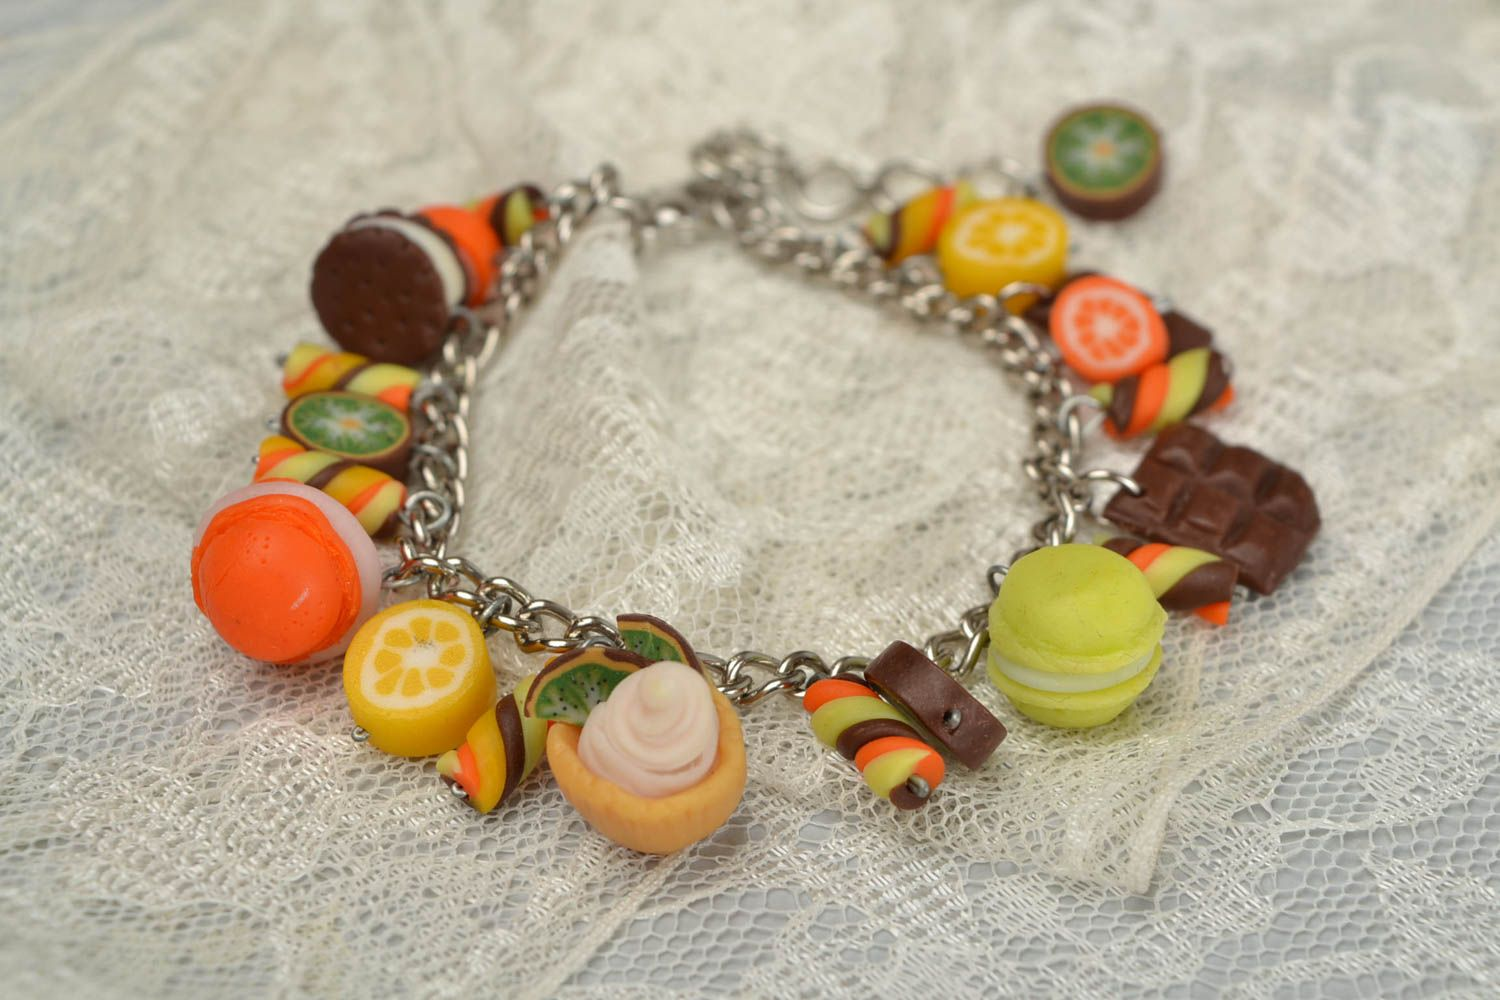 Handmade metal chain wrist bracelet with polymer clay charms Candies for women photo 1